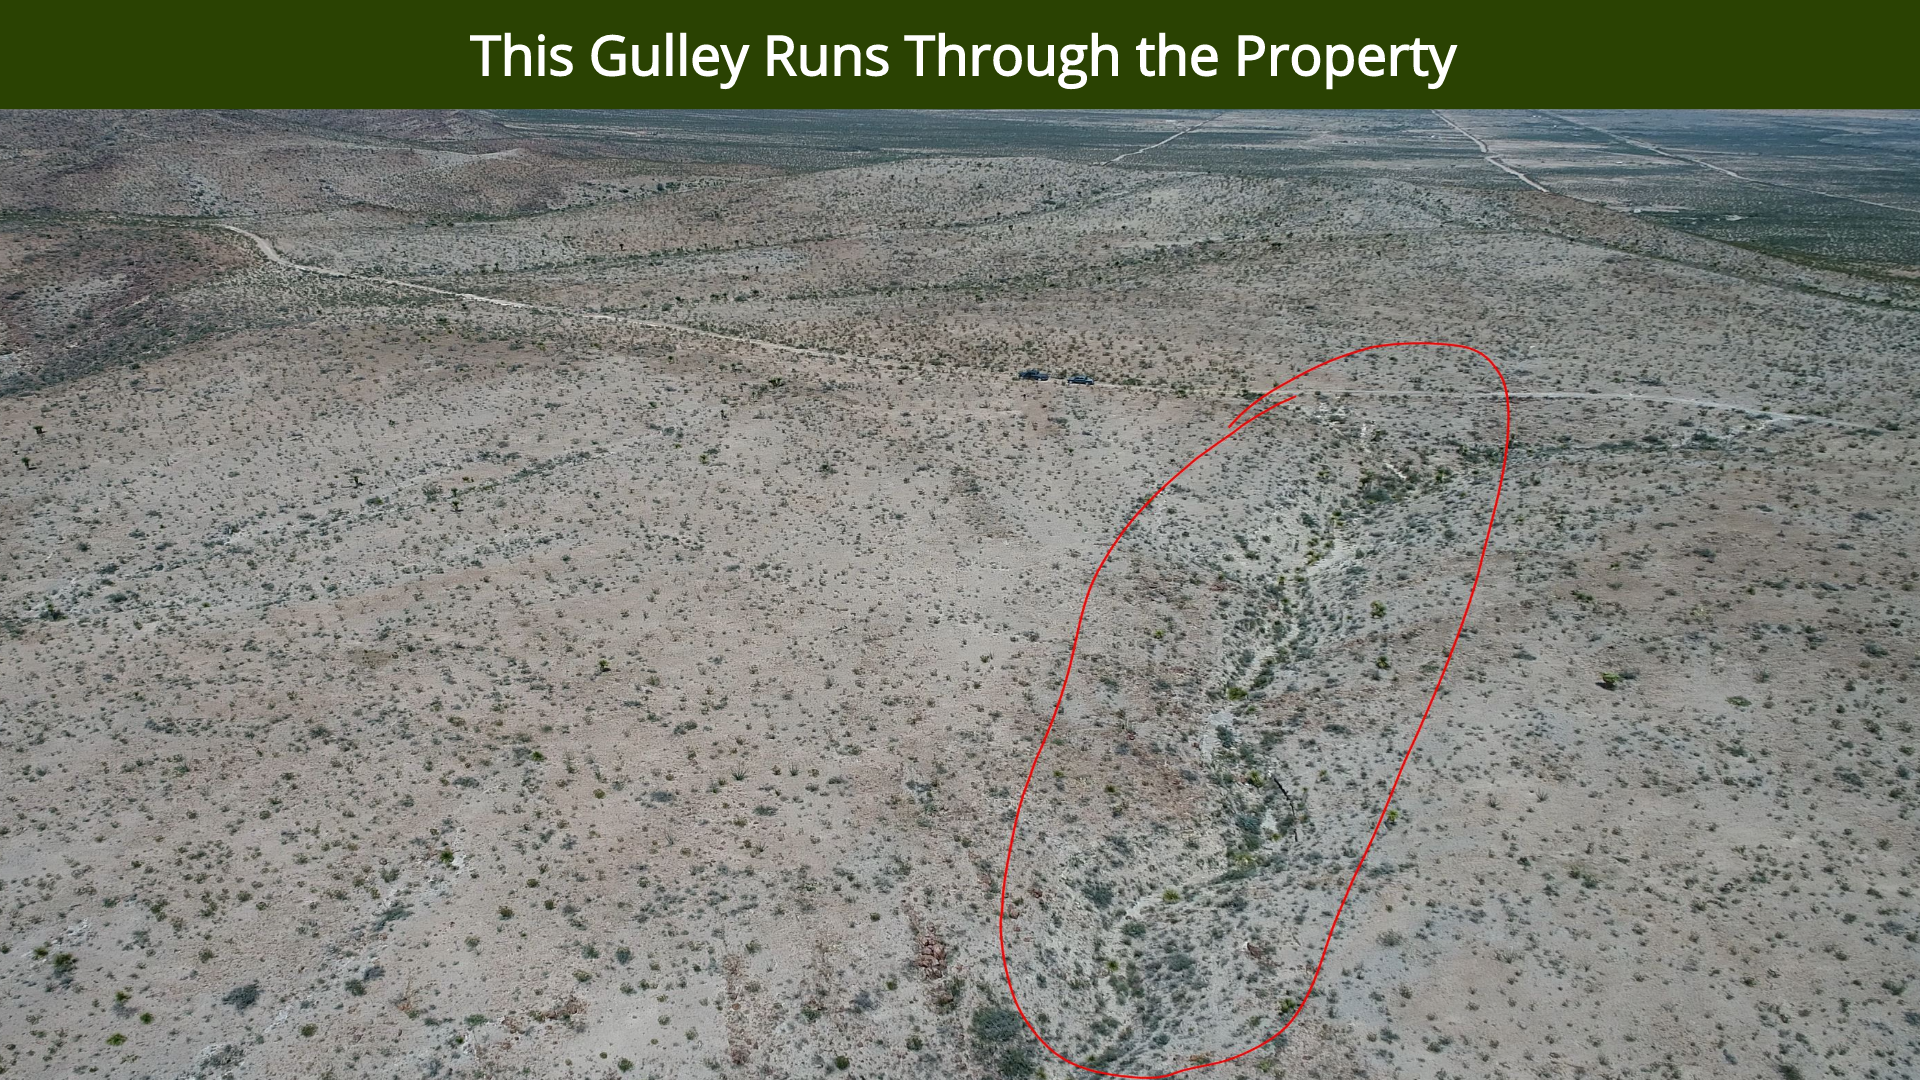 This Gulley Runs Through the Property